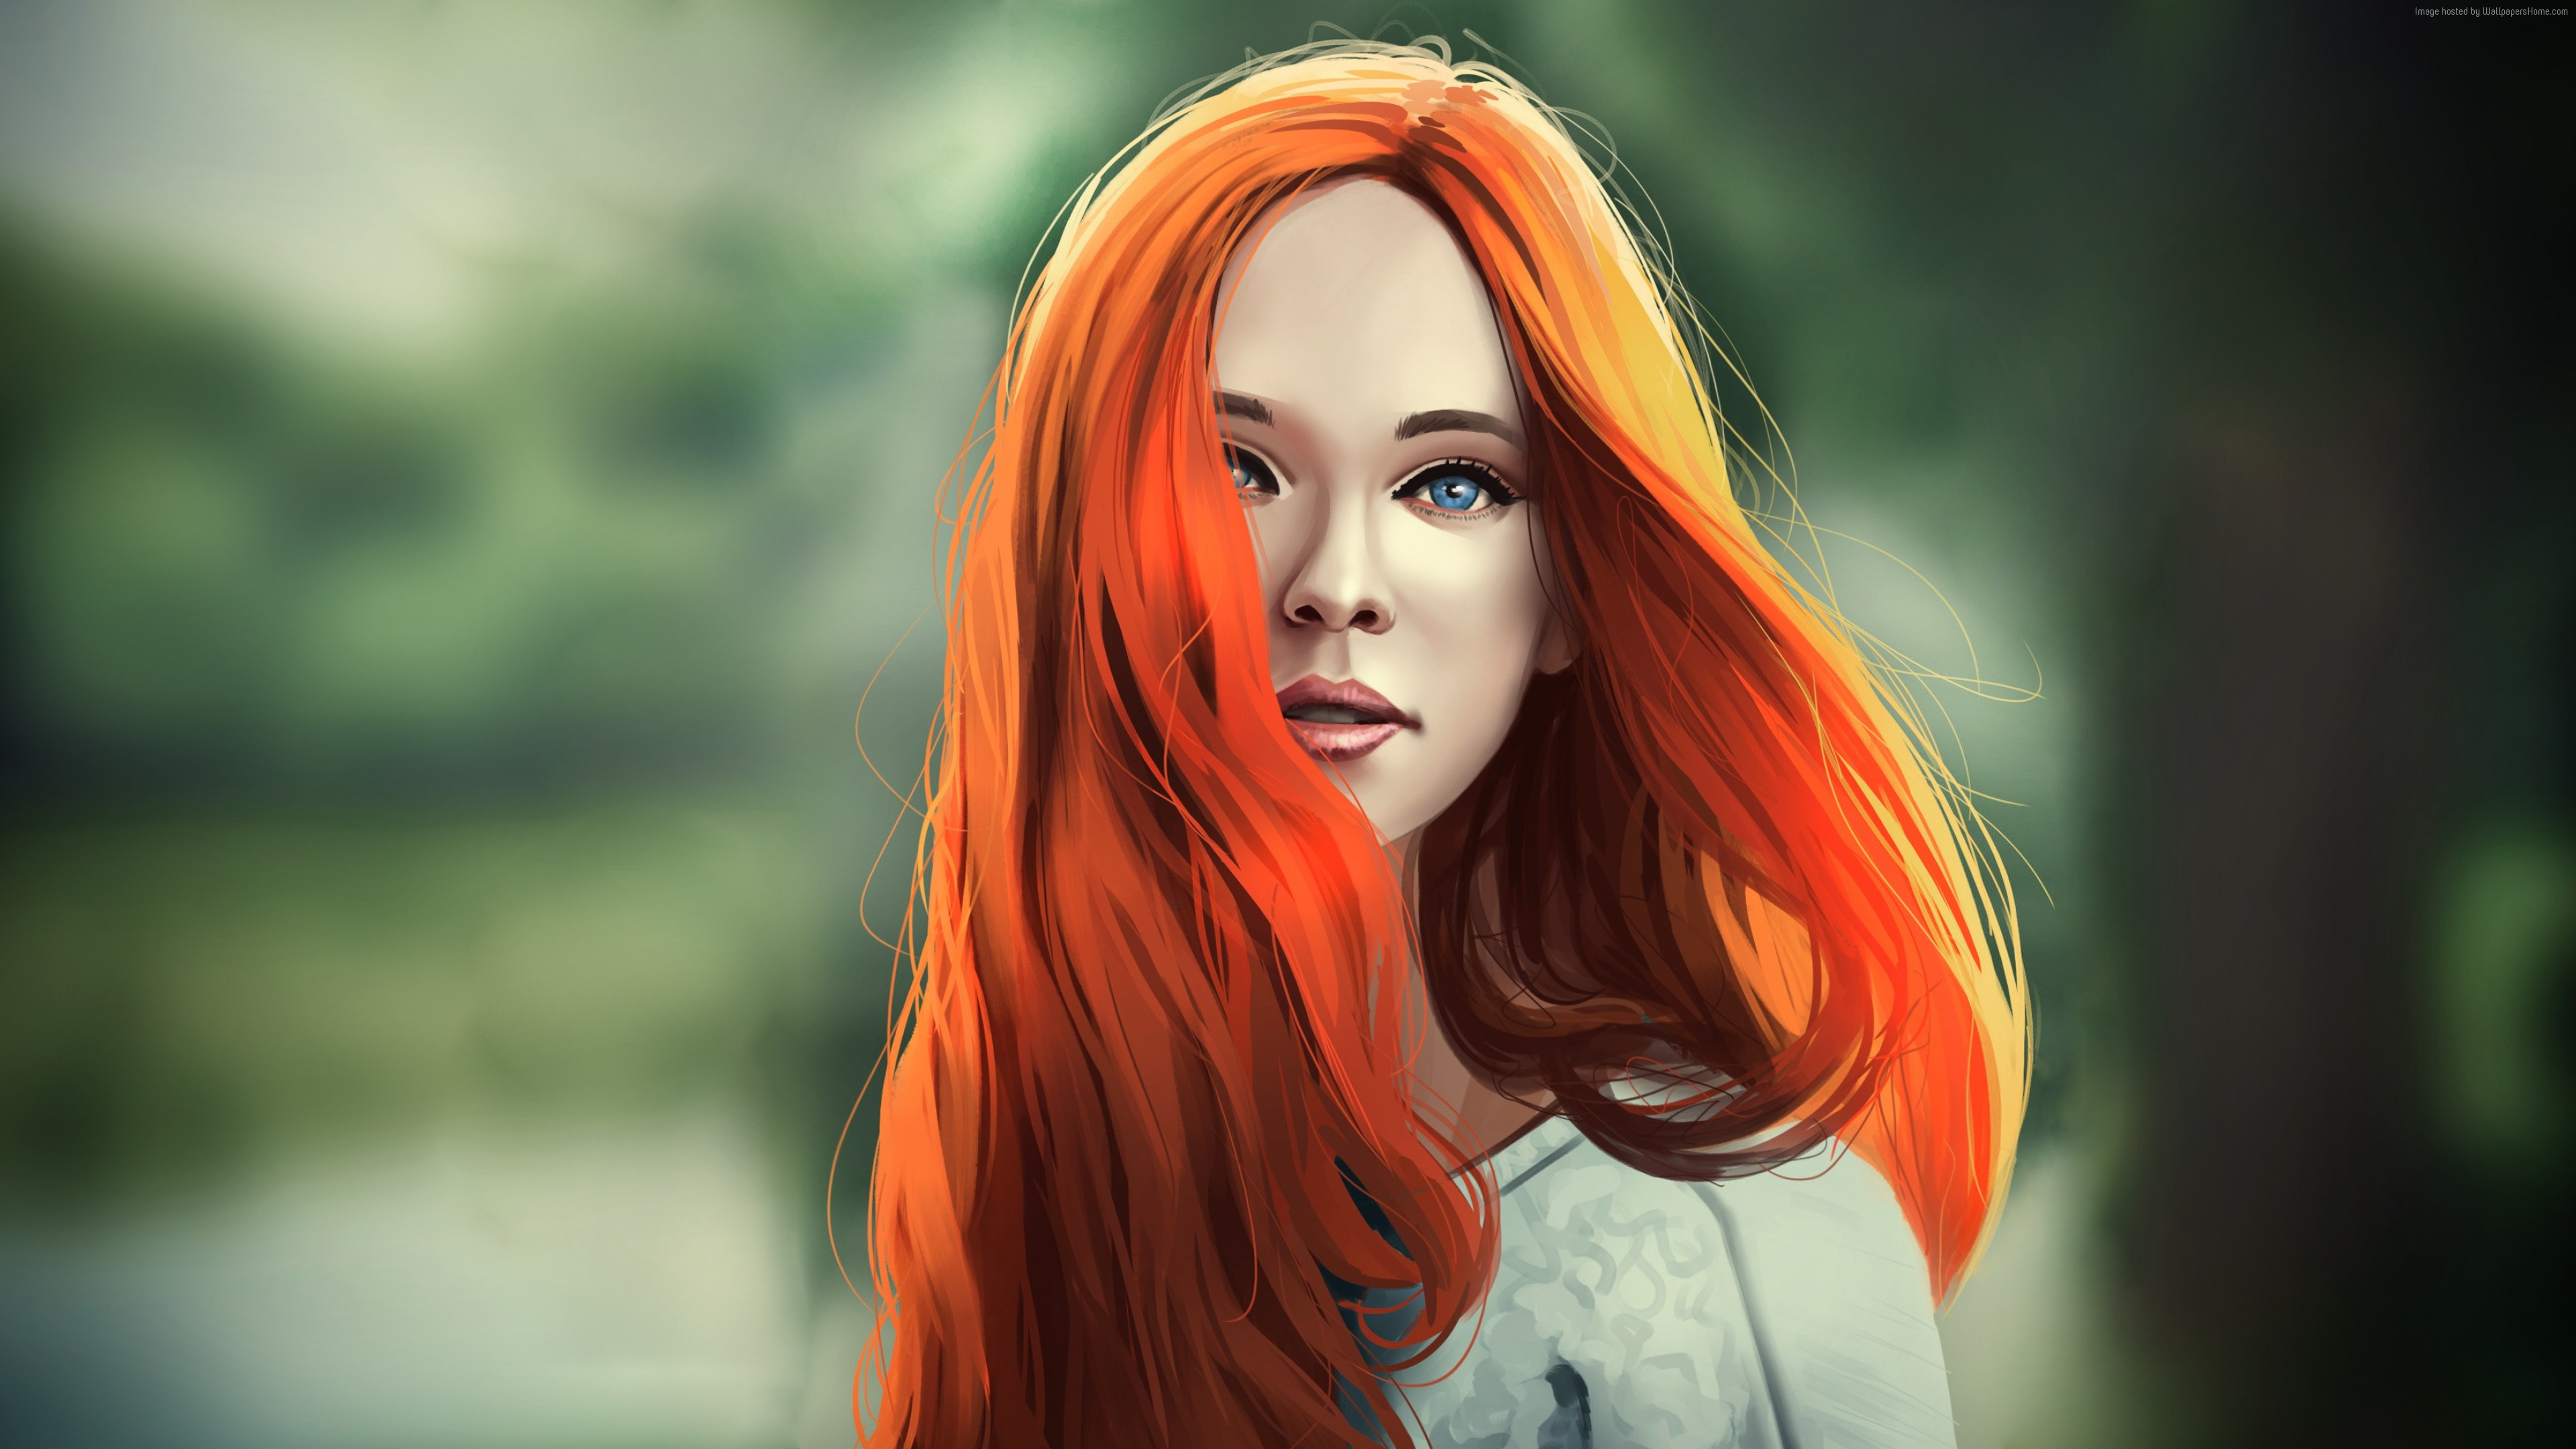 Wallpaper girl, red, hair, 4K, Girls